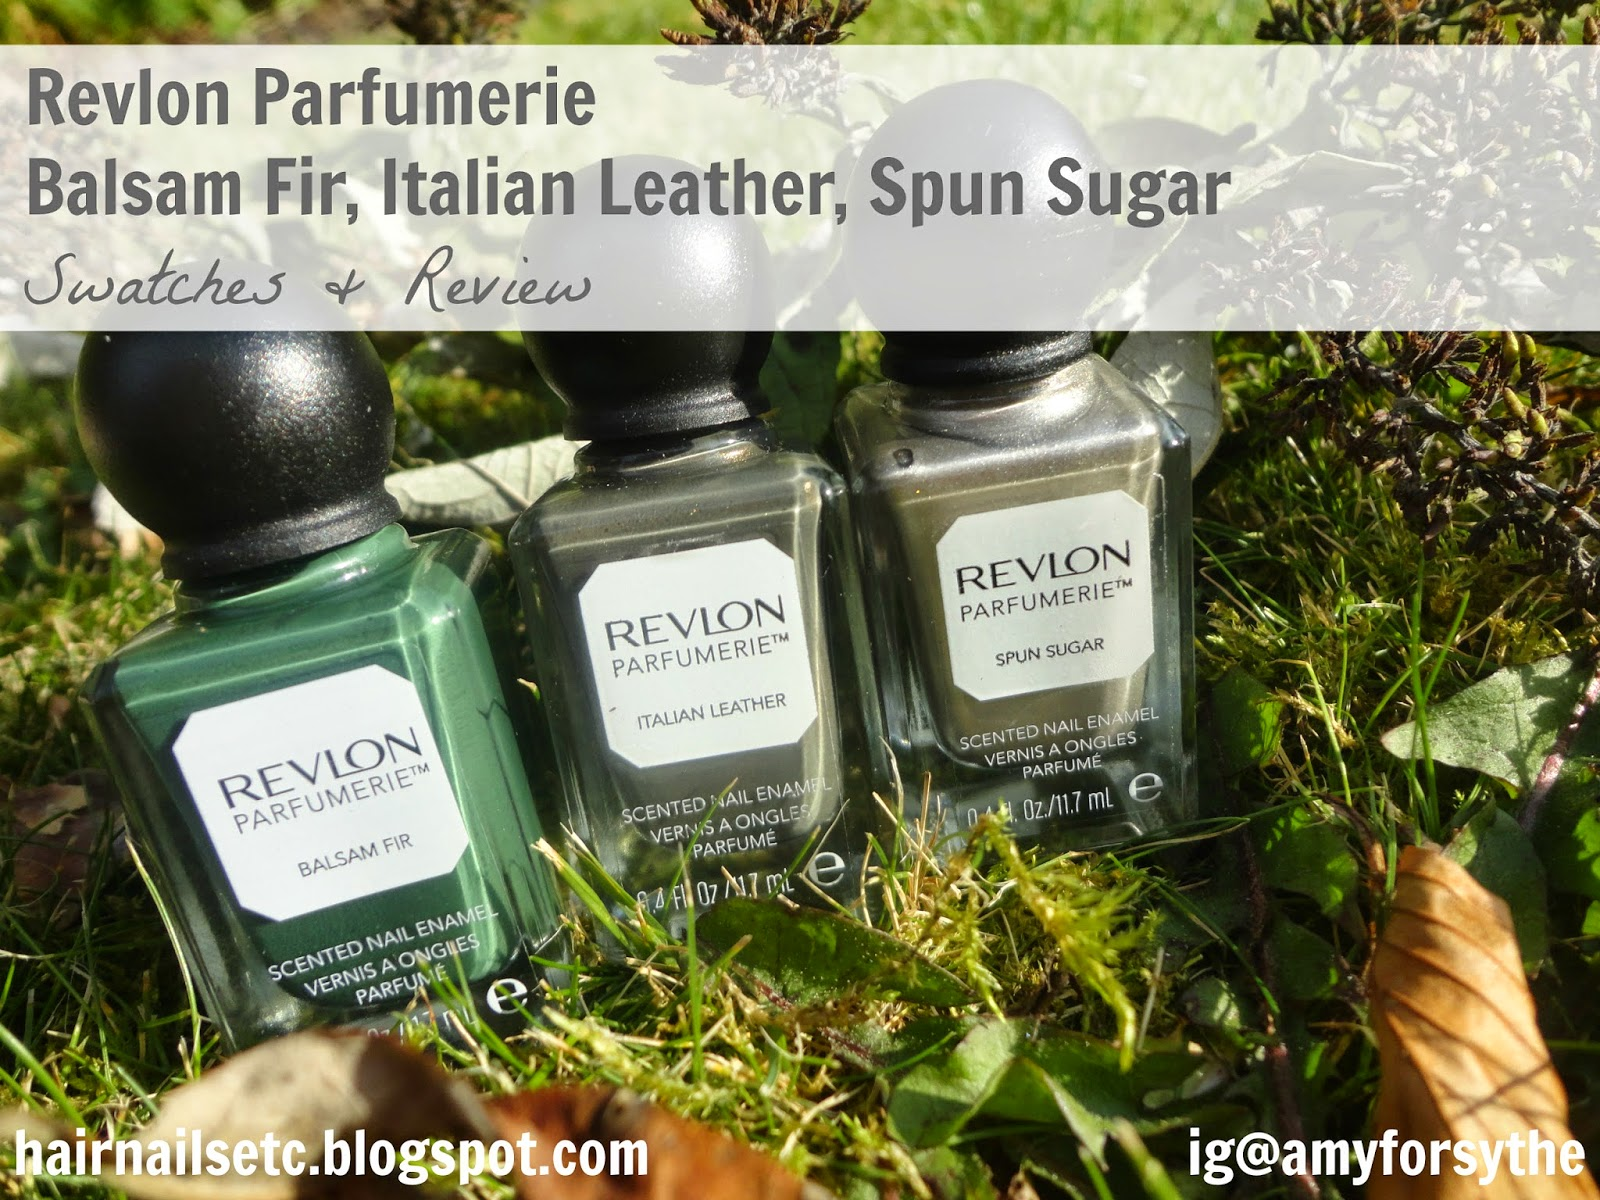 Revlon Parfumerie Nail Enamel Polish Varnish in Balsam Fir, Italian Leather and Spun Sugar